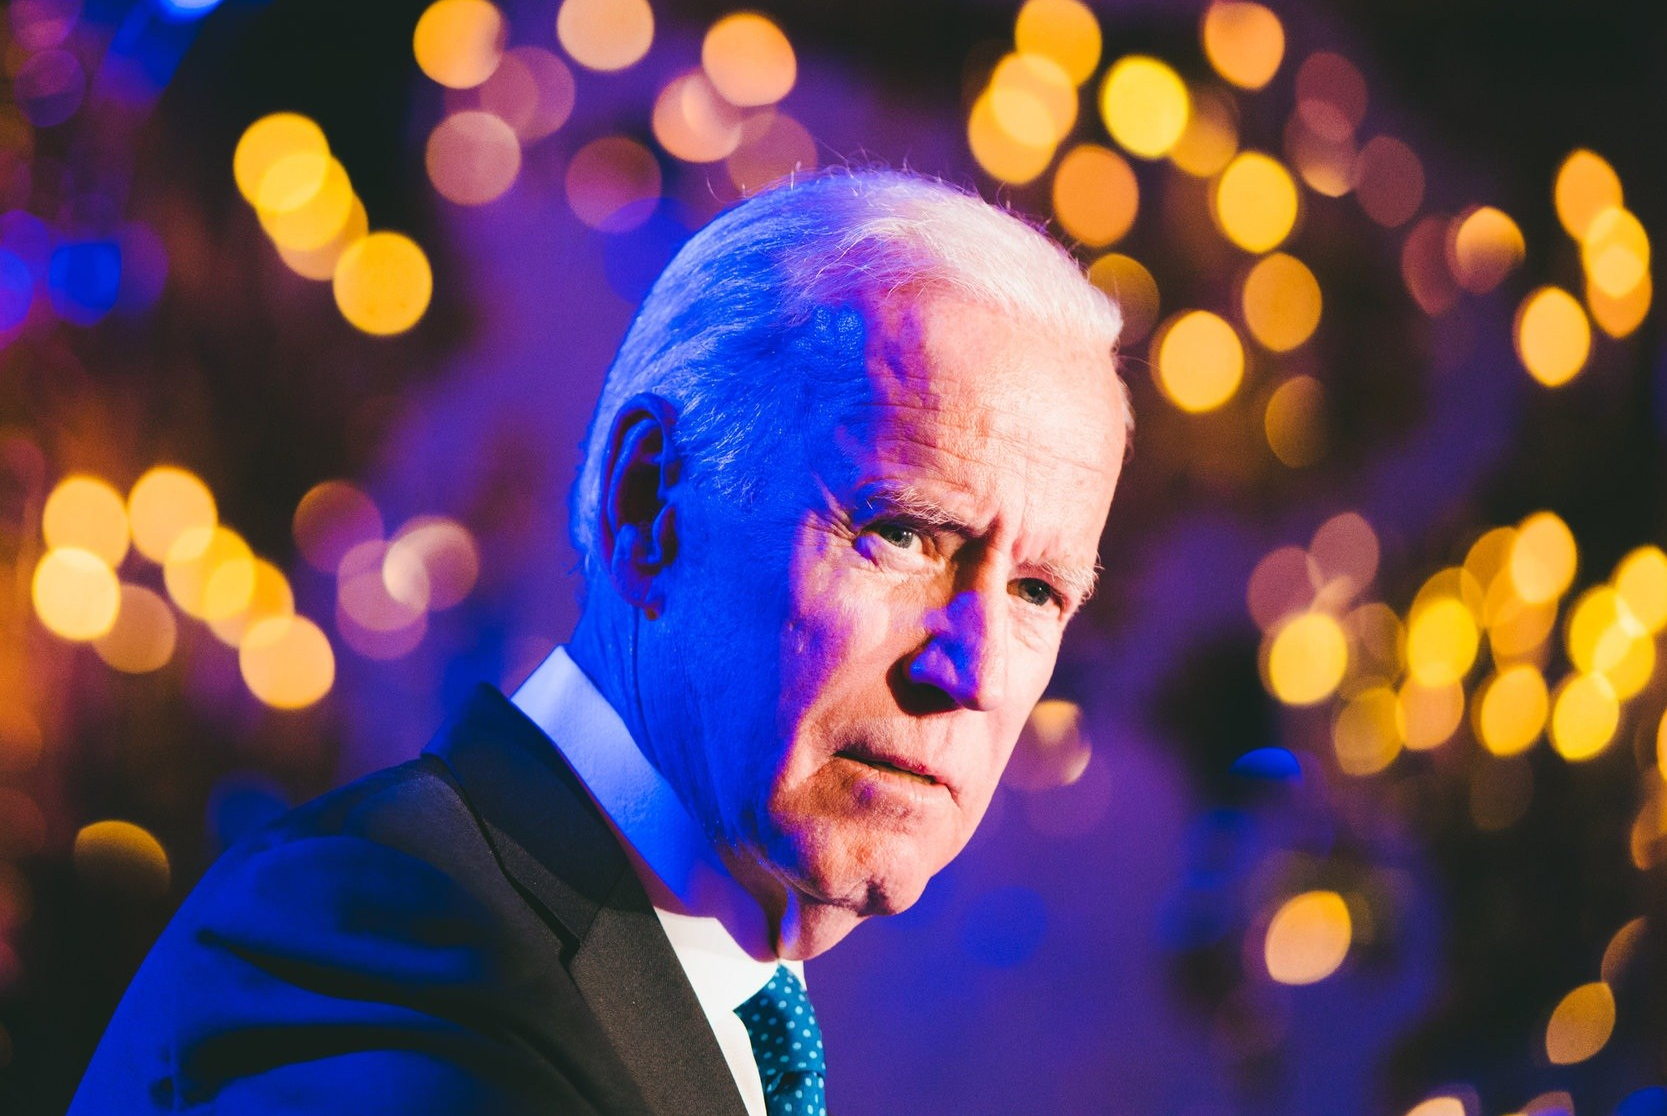 Joe Biden in front of a display of lights.